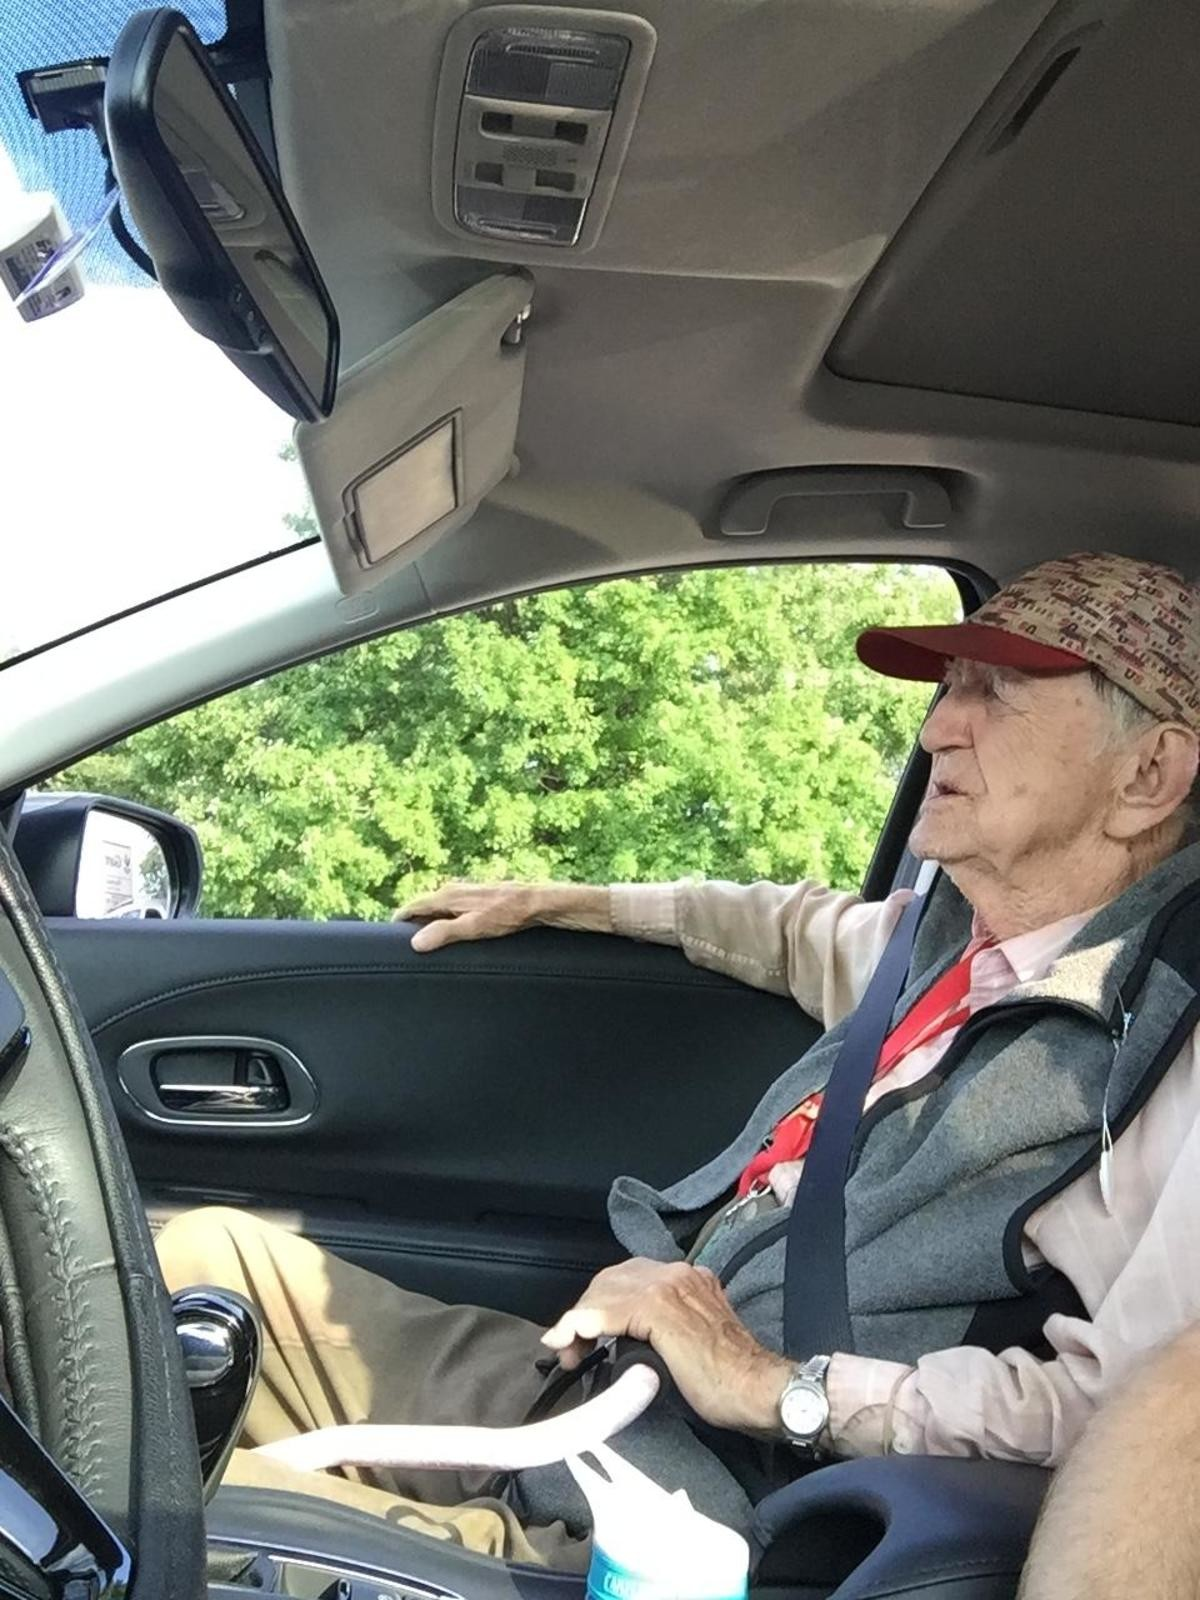 Elder man catches a ride. His neighbor is apparently a really nice guy but lives alone so he took him out for a nice drive with burgers. Maybe not the single mo